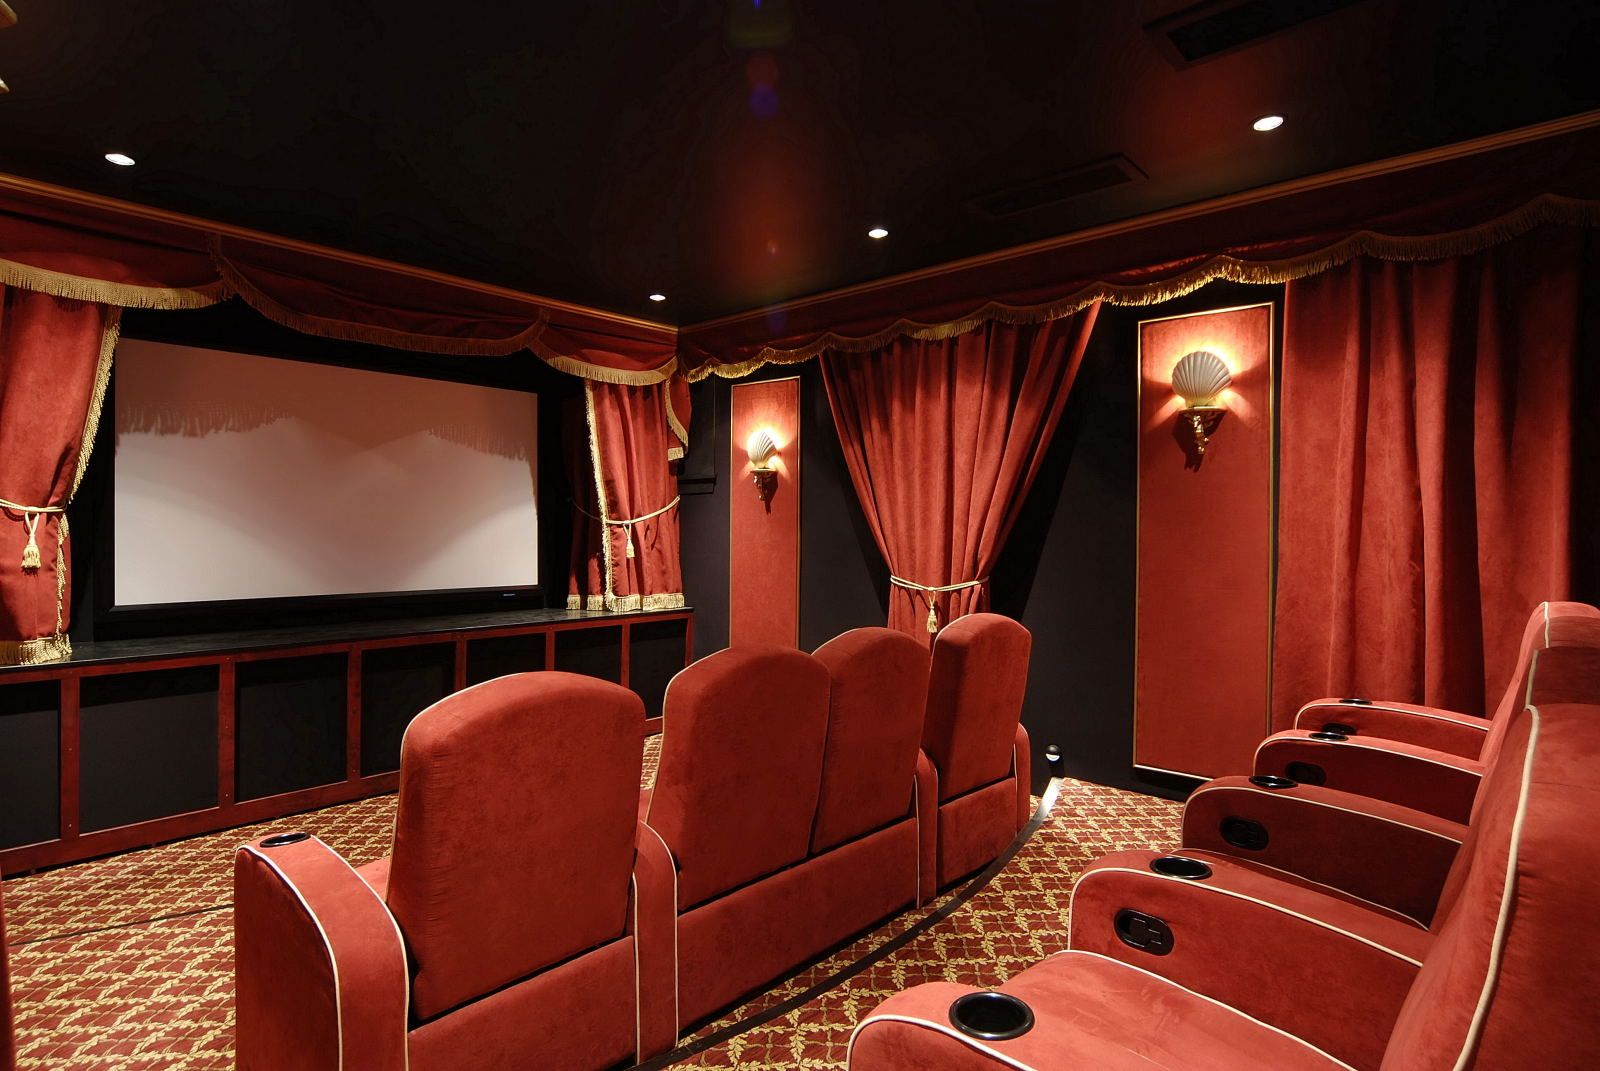 Room Prima Cinema A